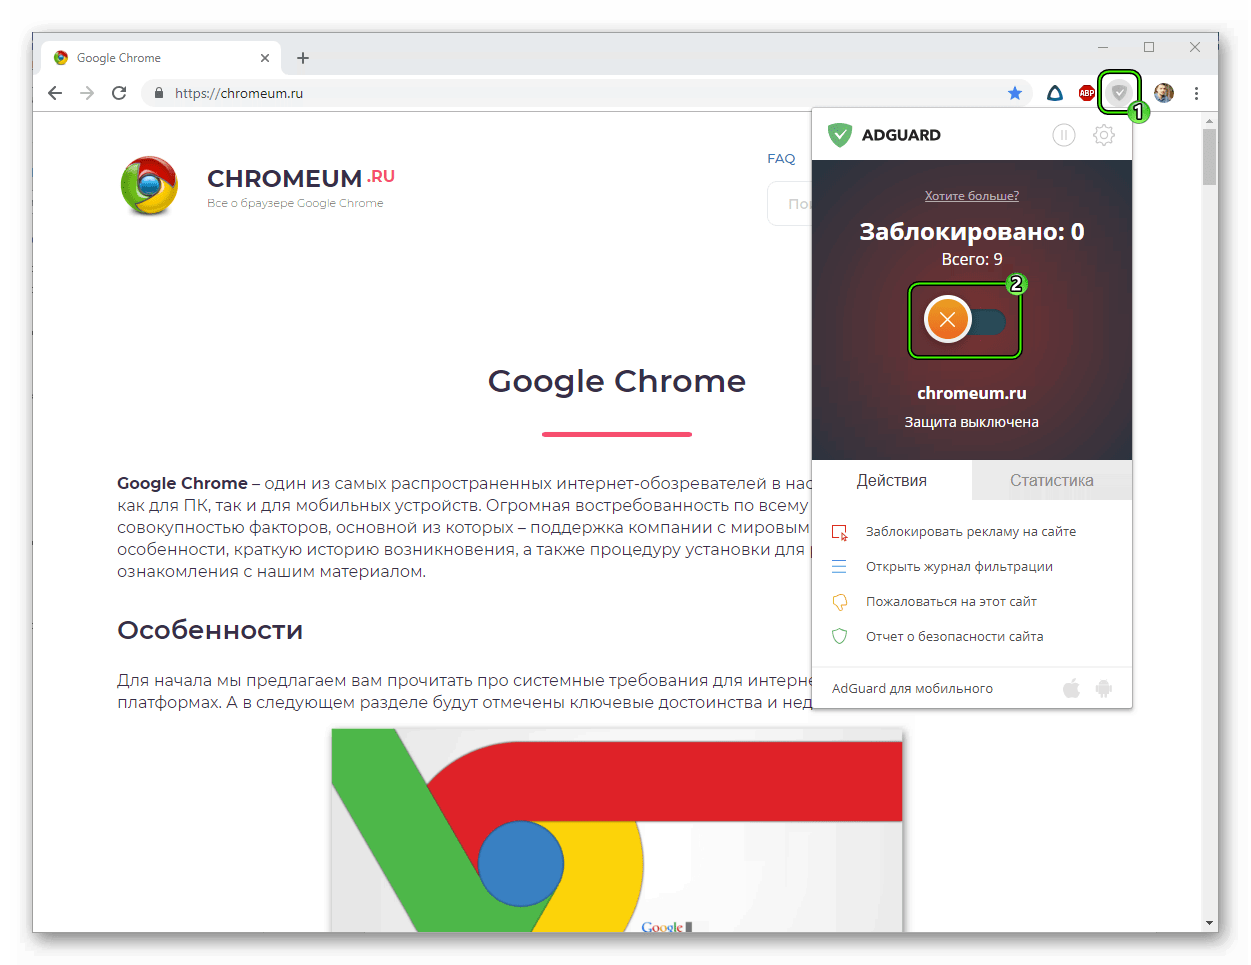 Отключение Adguard для Google Chrome